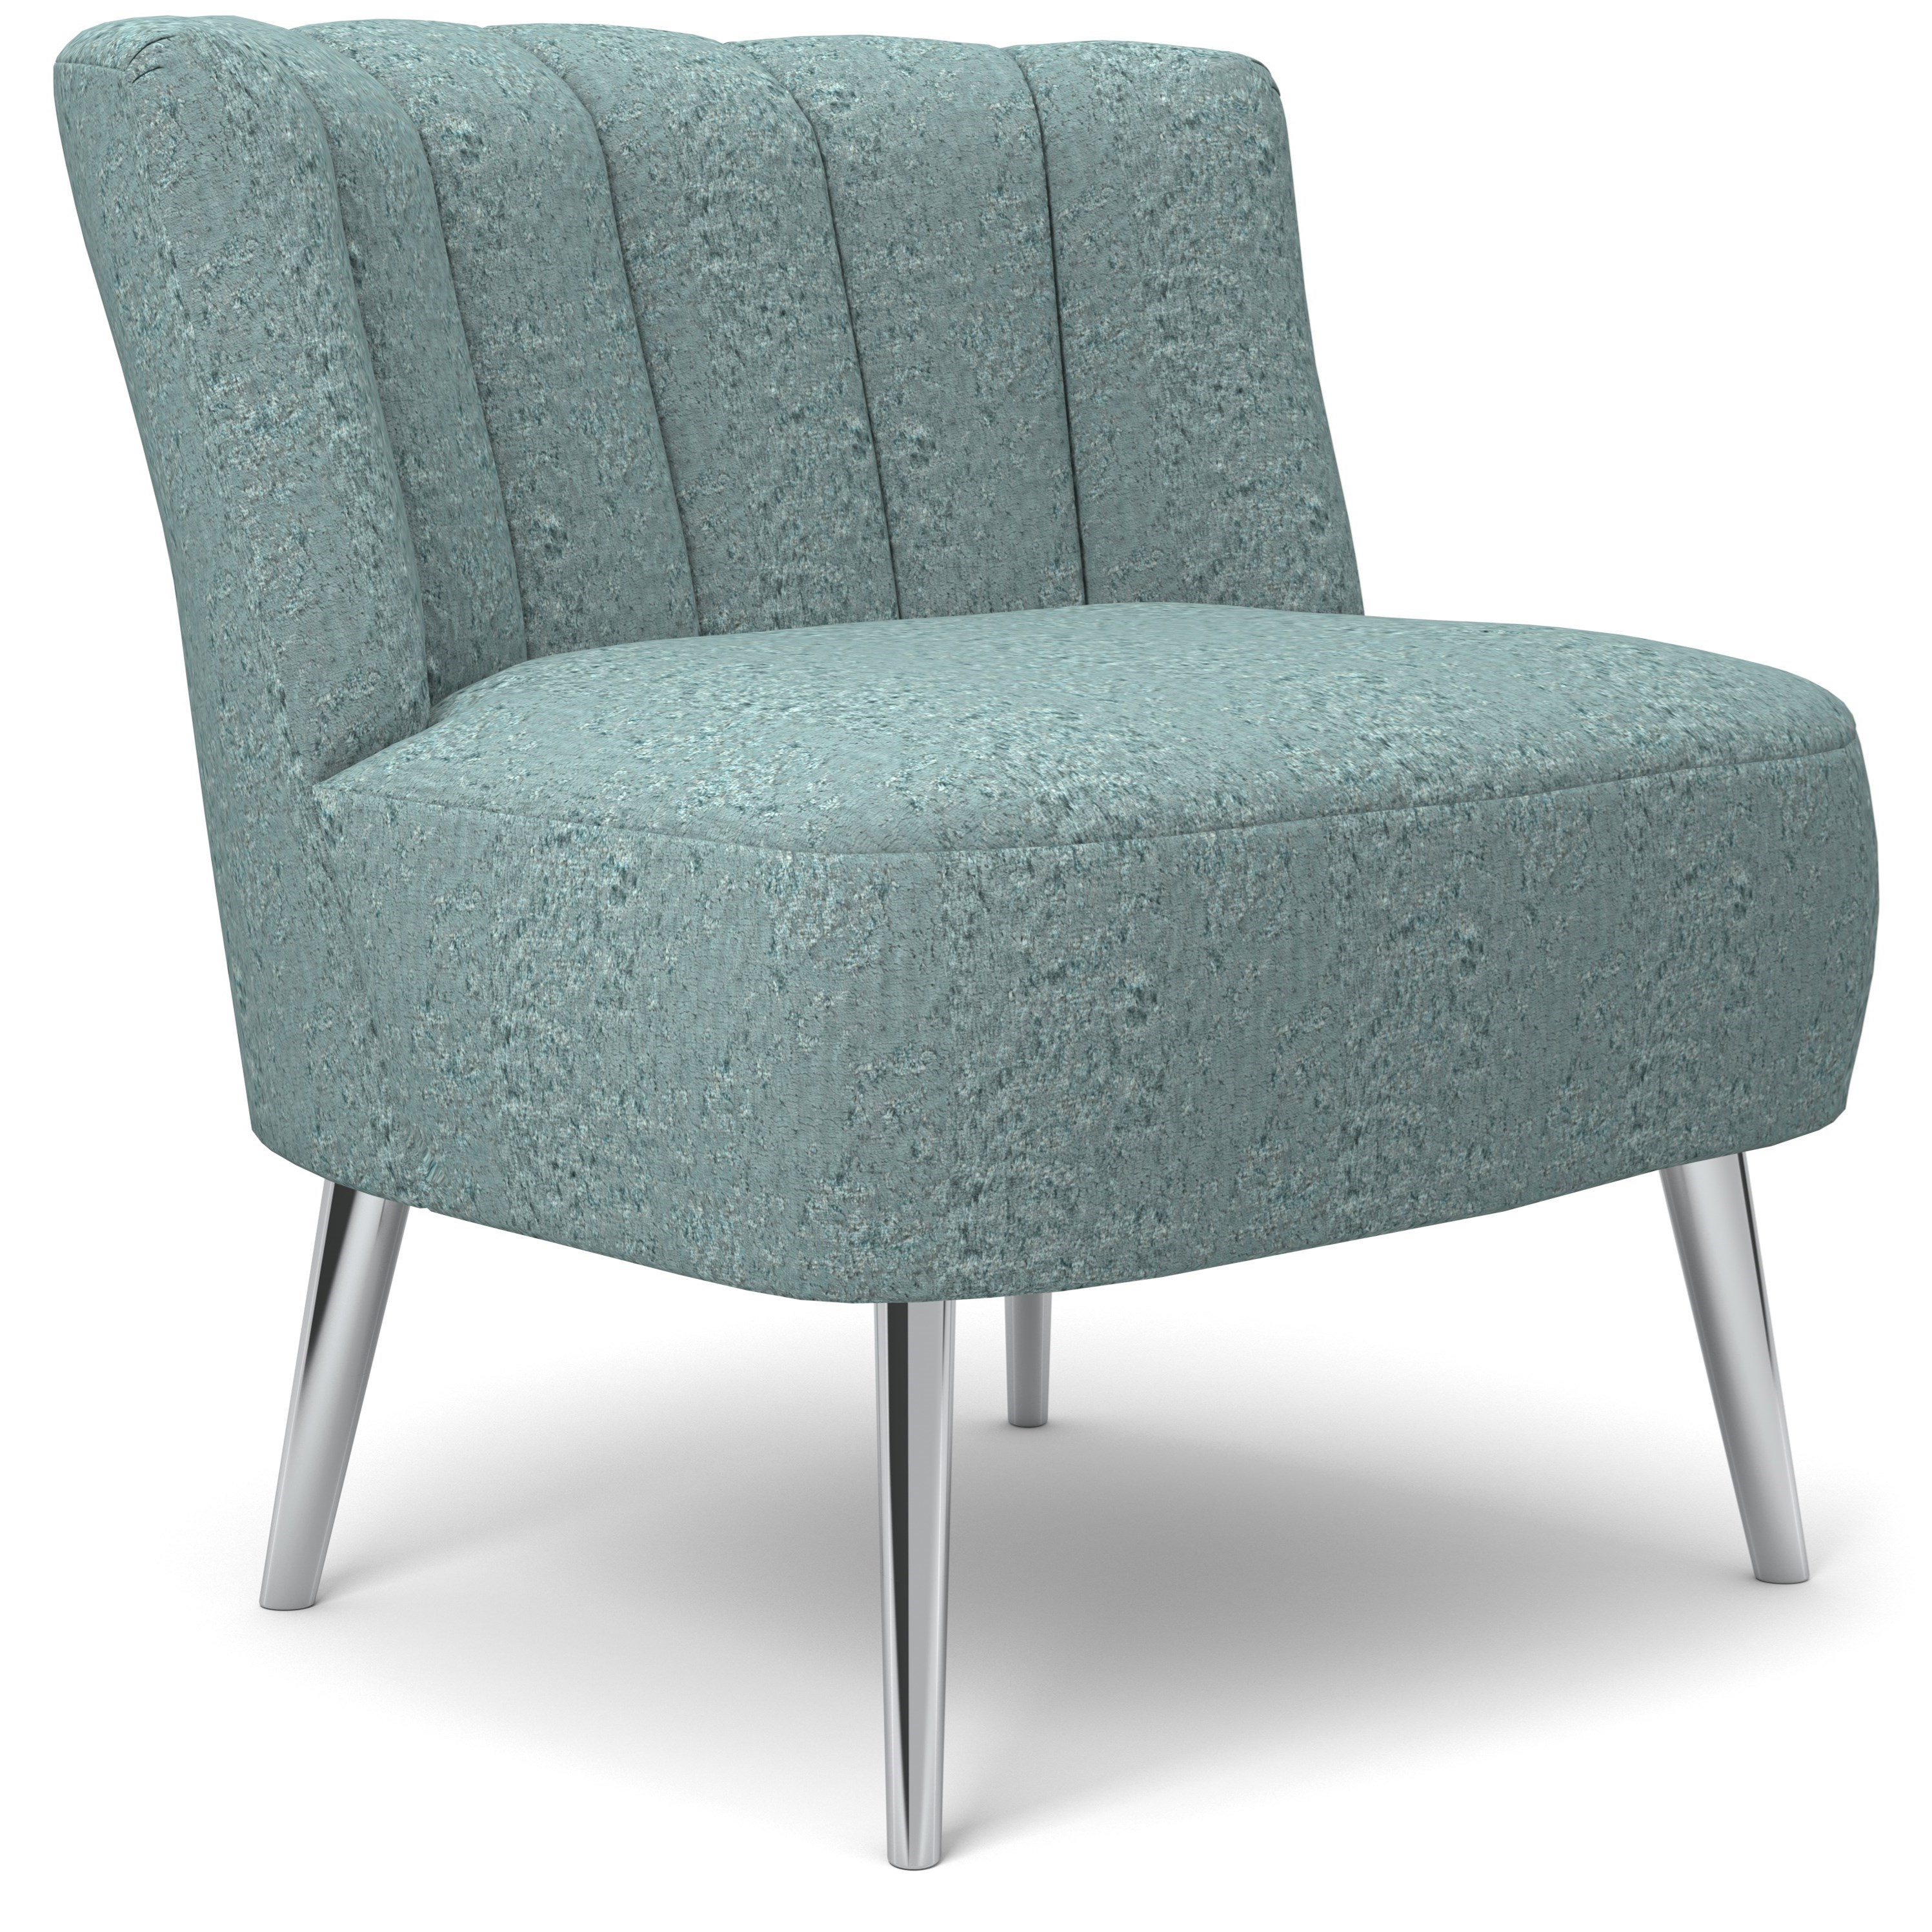 Best Xpress - Ameretta Accent Chair by Best Home Furnishings at Zak's Home